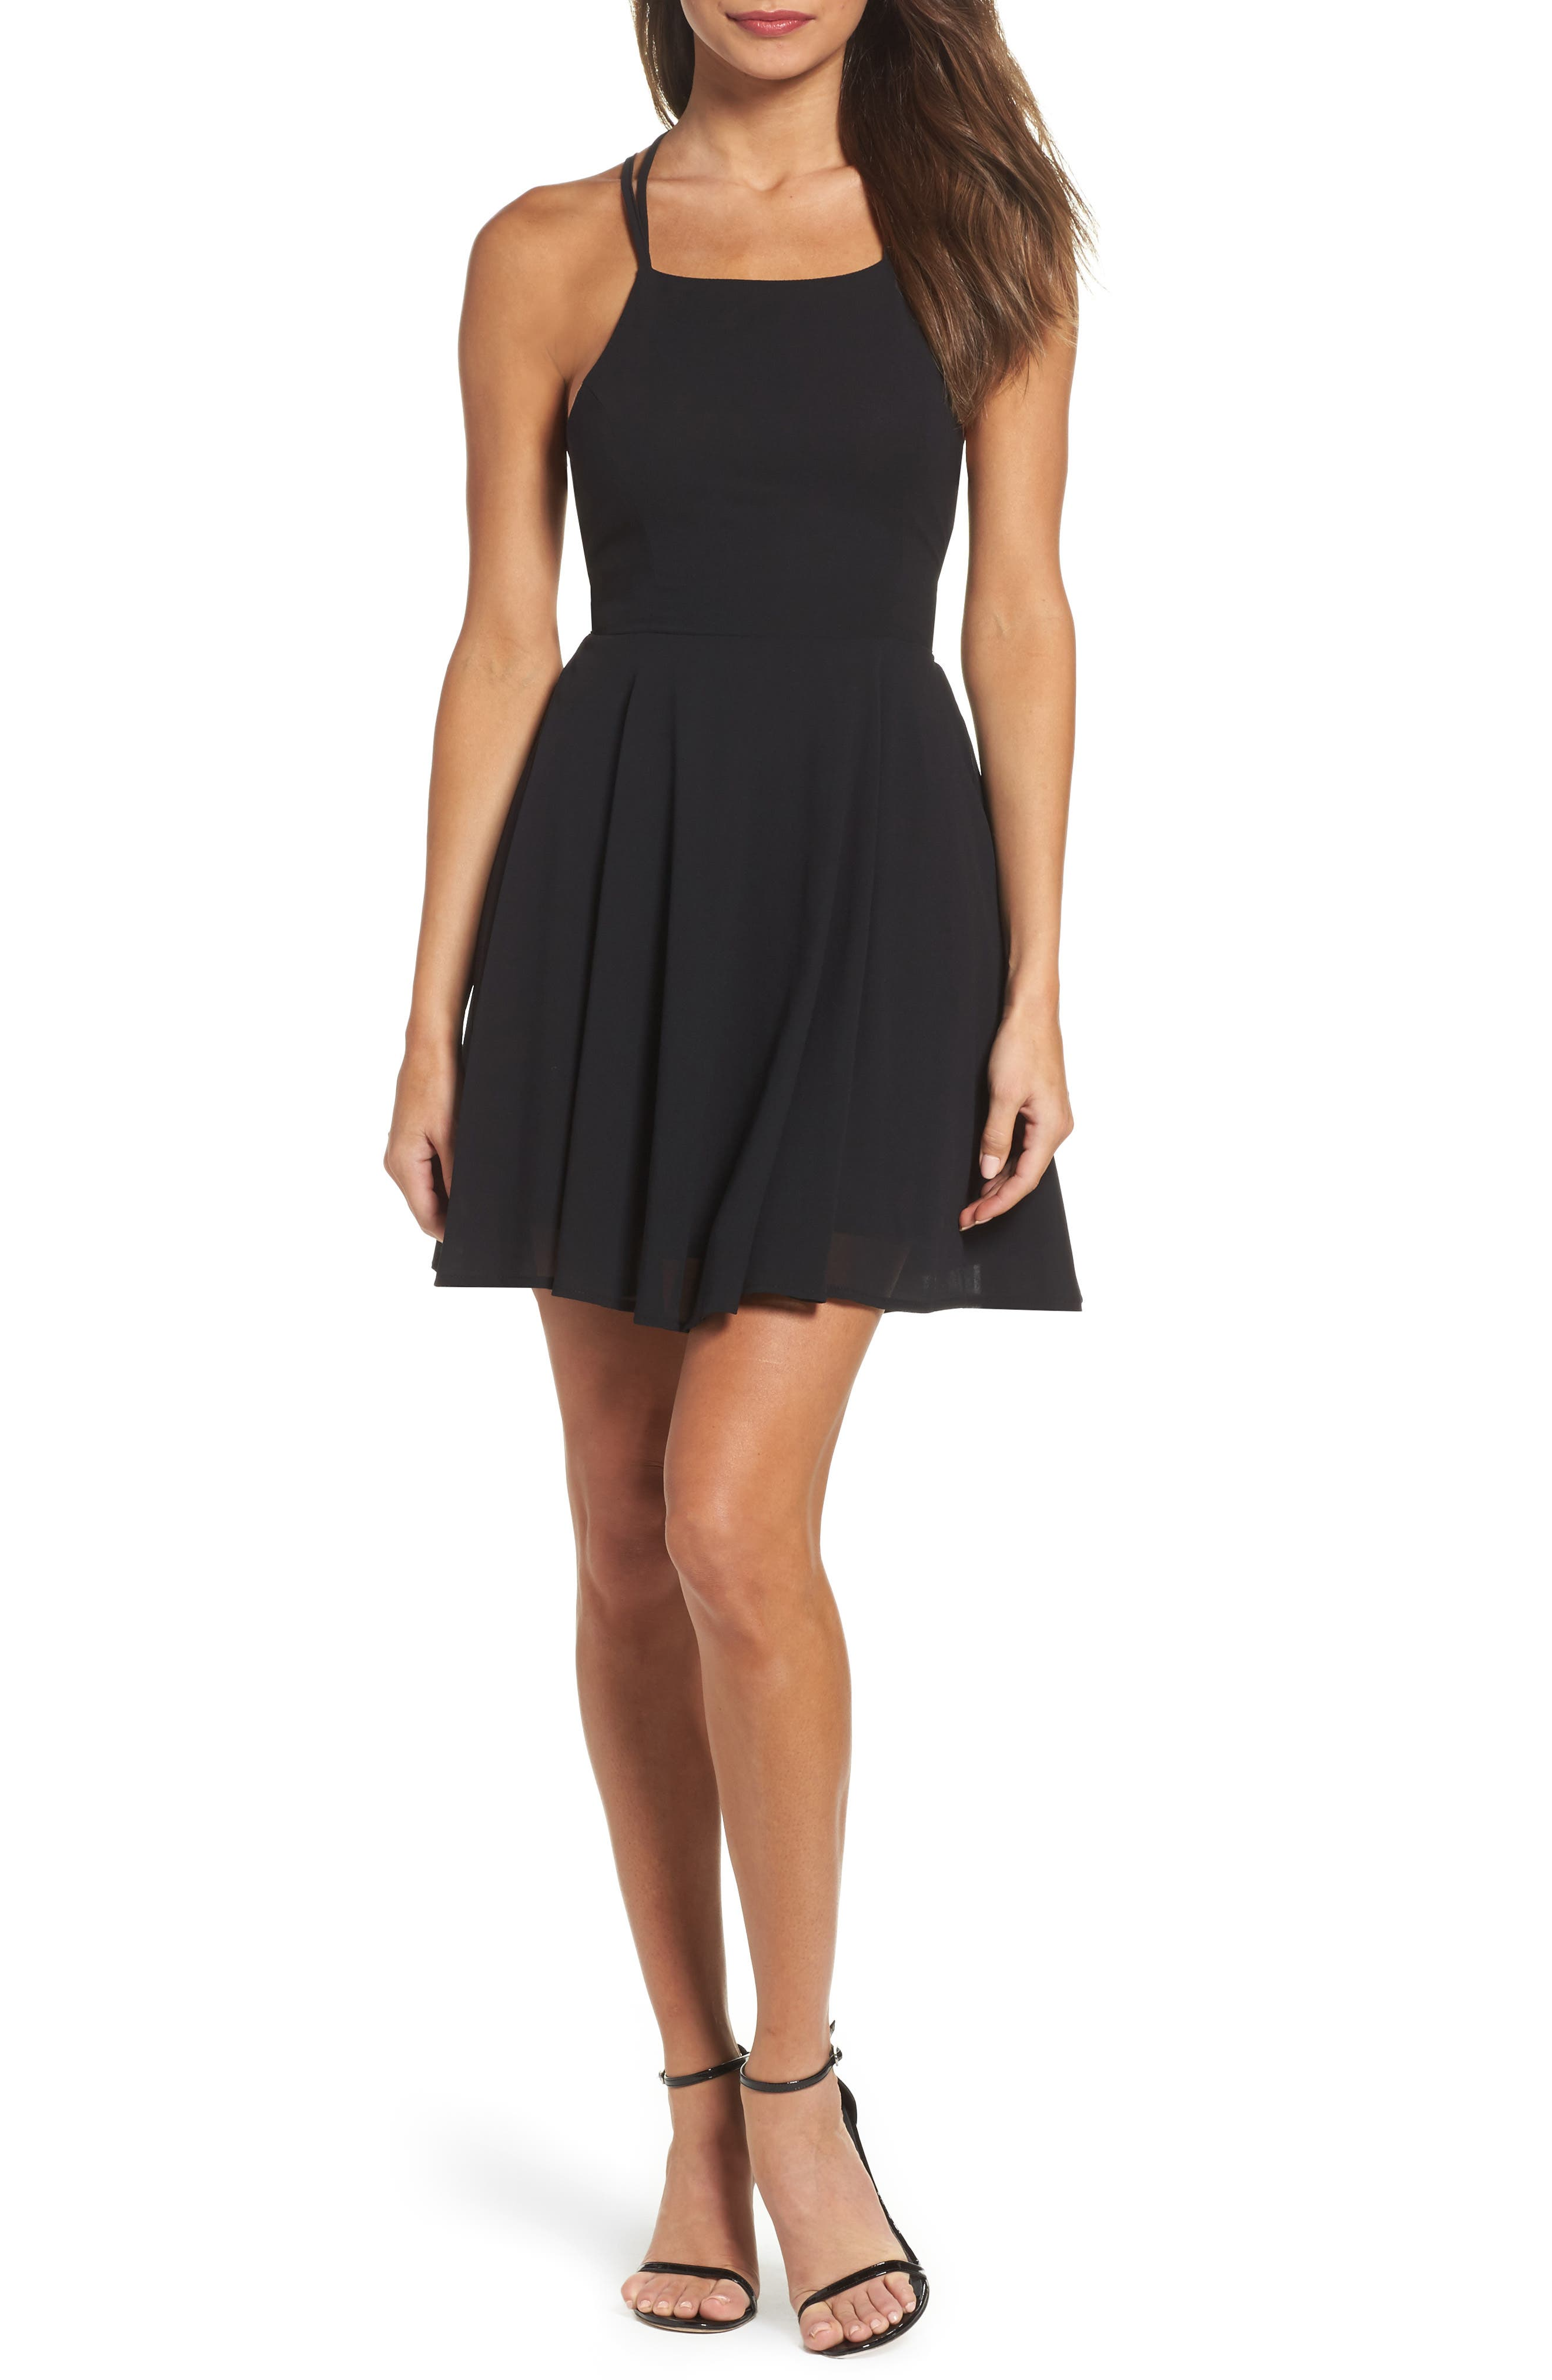 Lulus Good Deeds Lace-Up Skater Dress